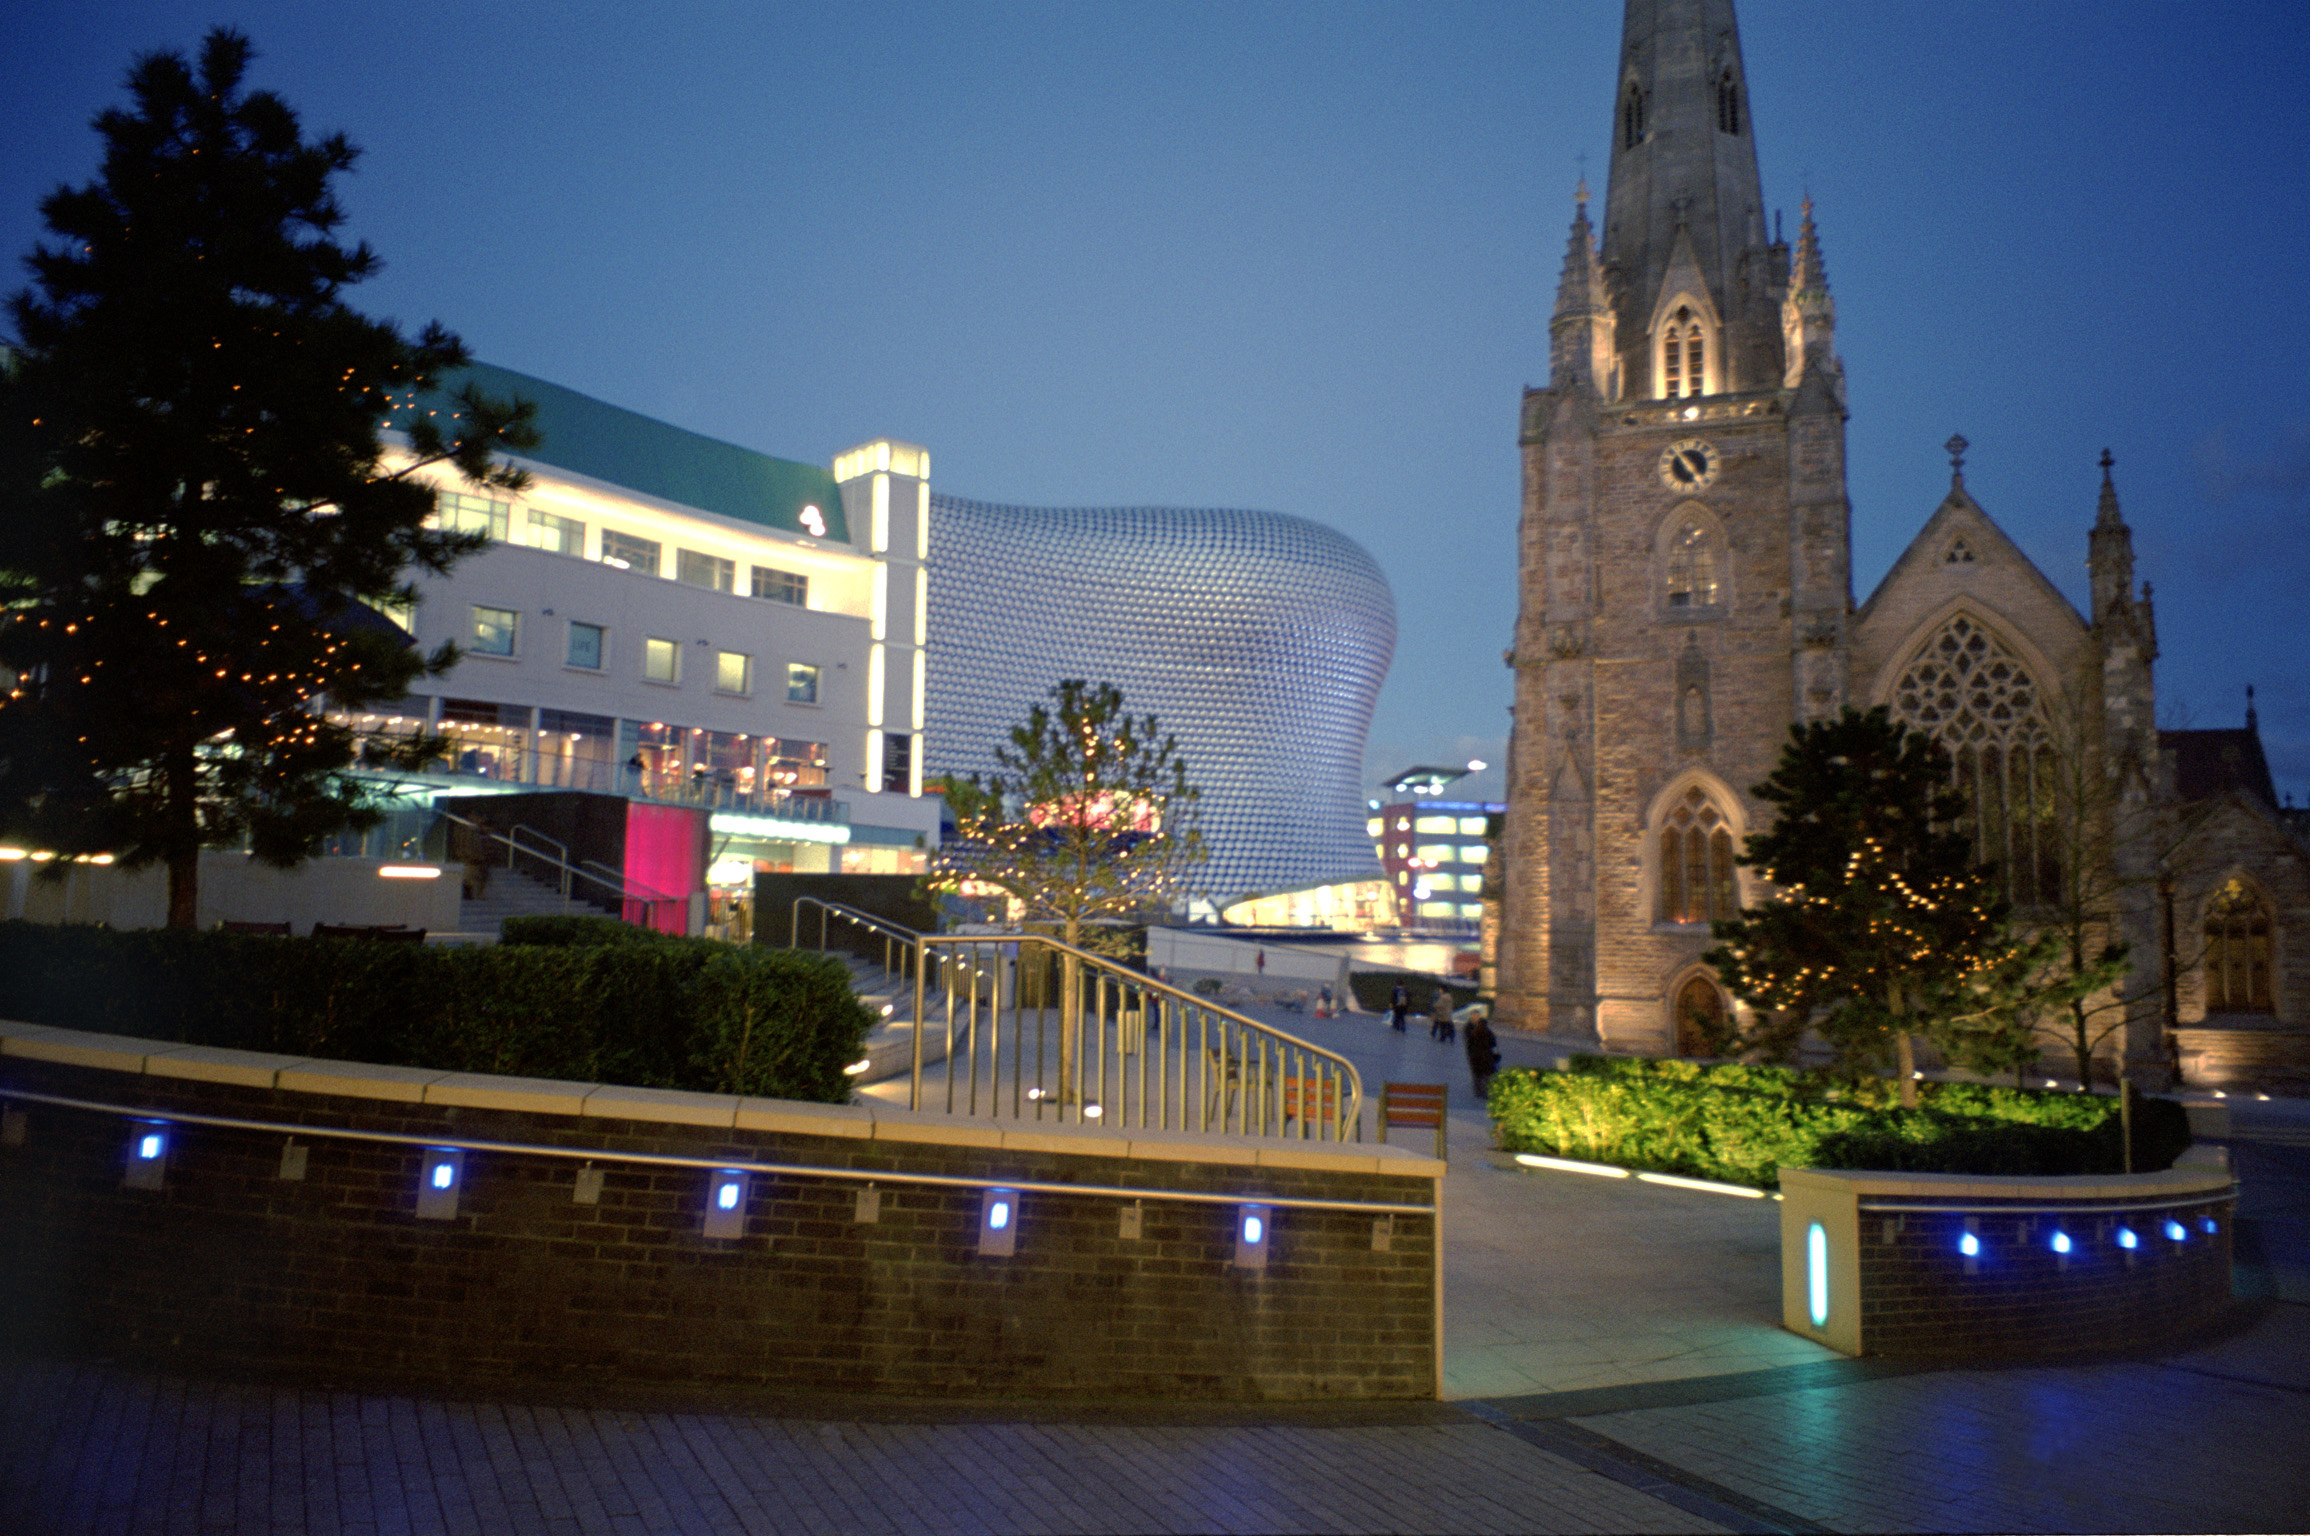 View of an urban square with church and spire in central Birmingham with the Bullring shopping centre in the background at night